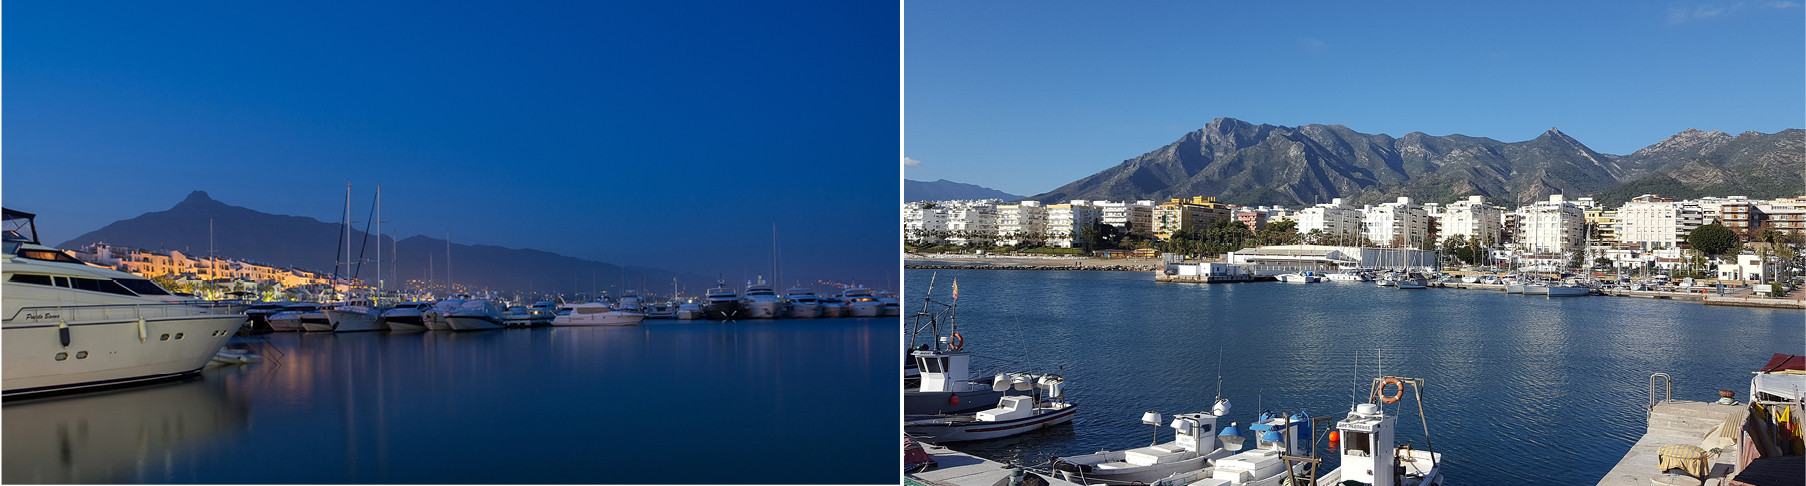 Puerto-Banus-and-Marbella